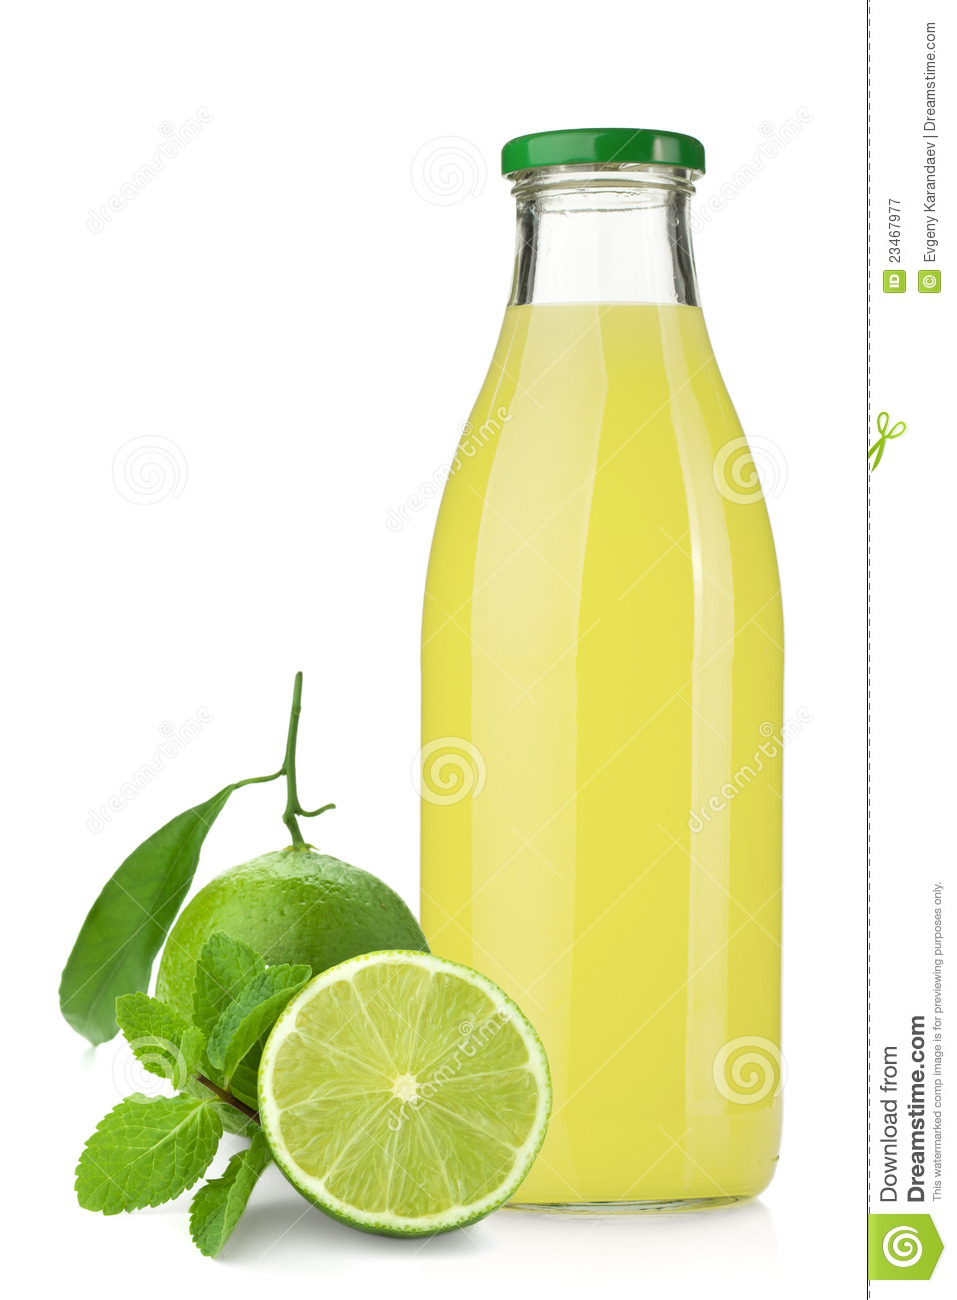 Lime Juice Bottle, Ripe Limes And Mint Royalty Free Stock Photography ...